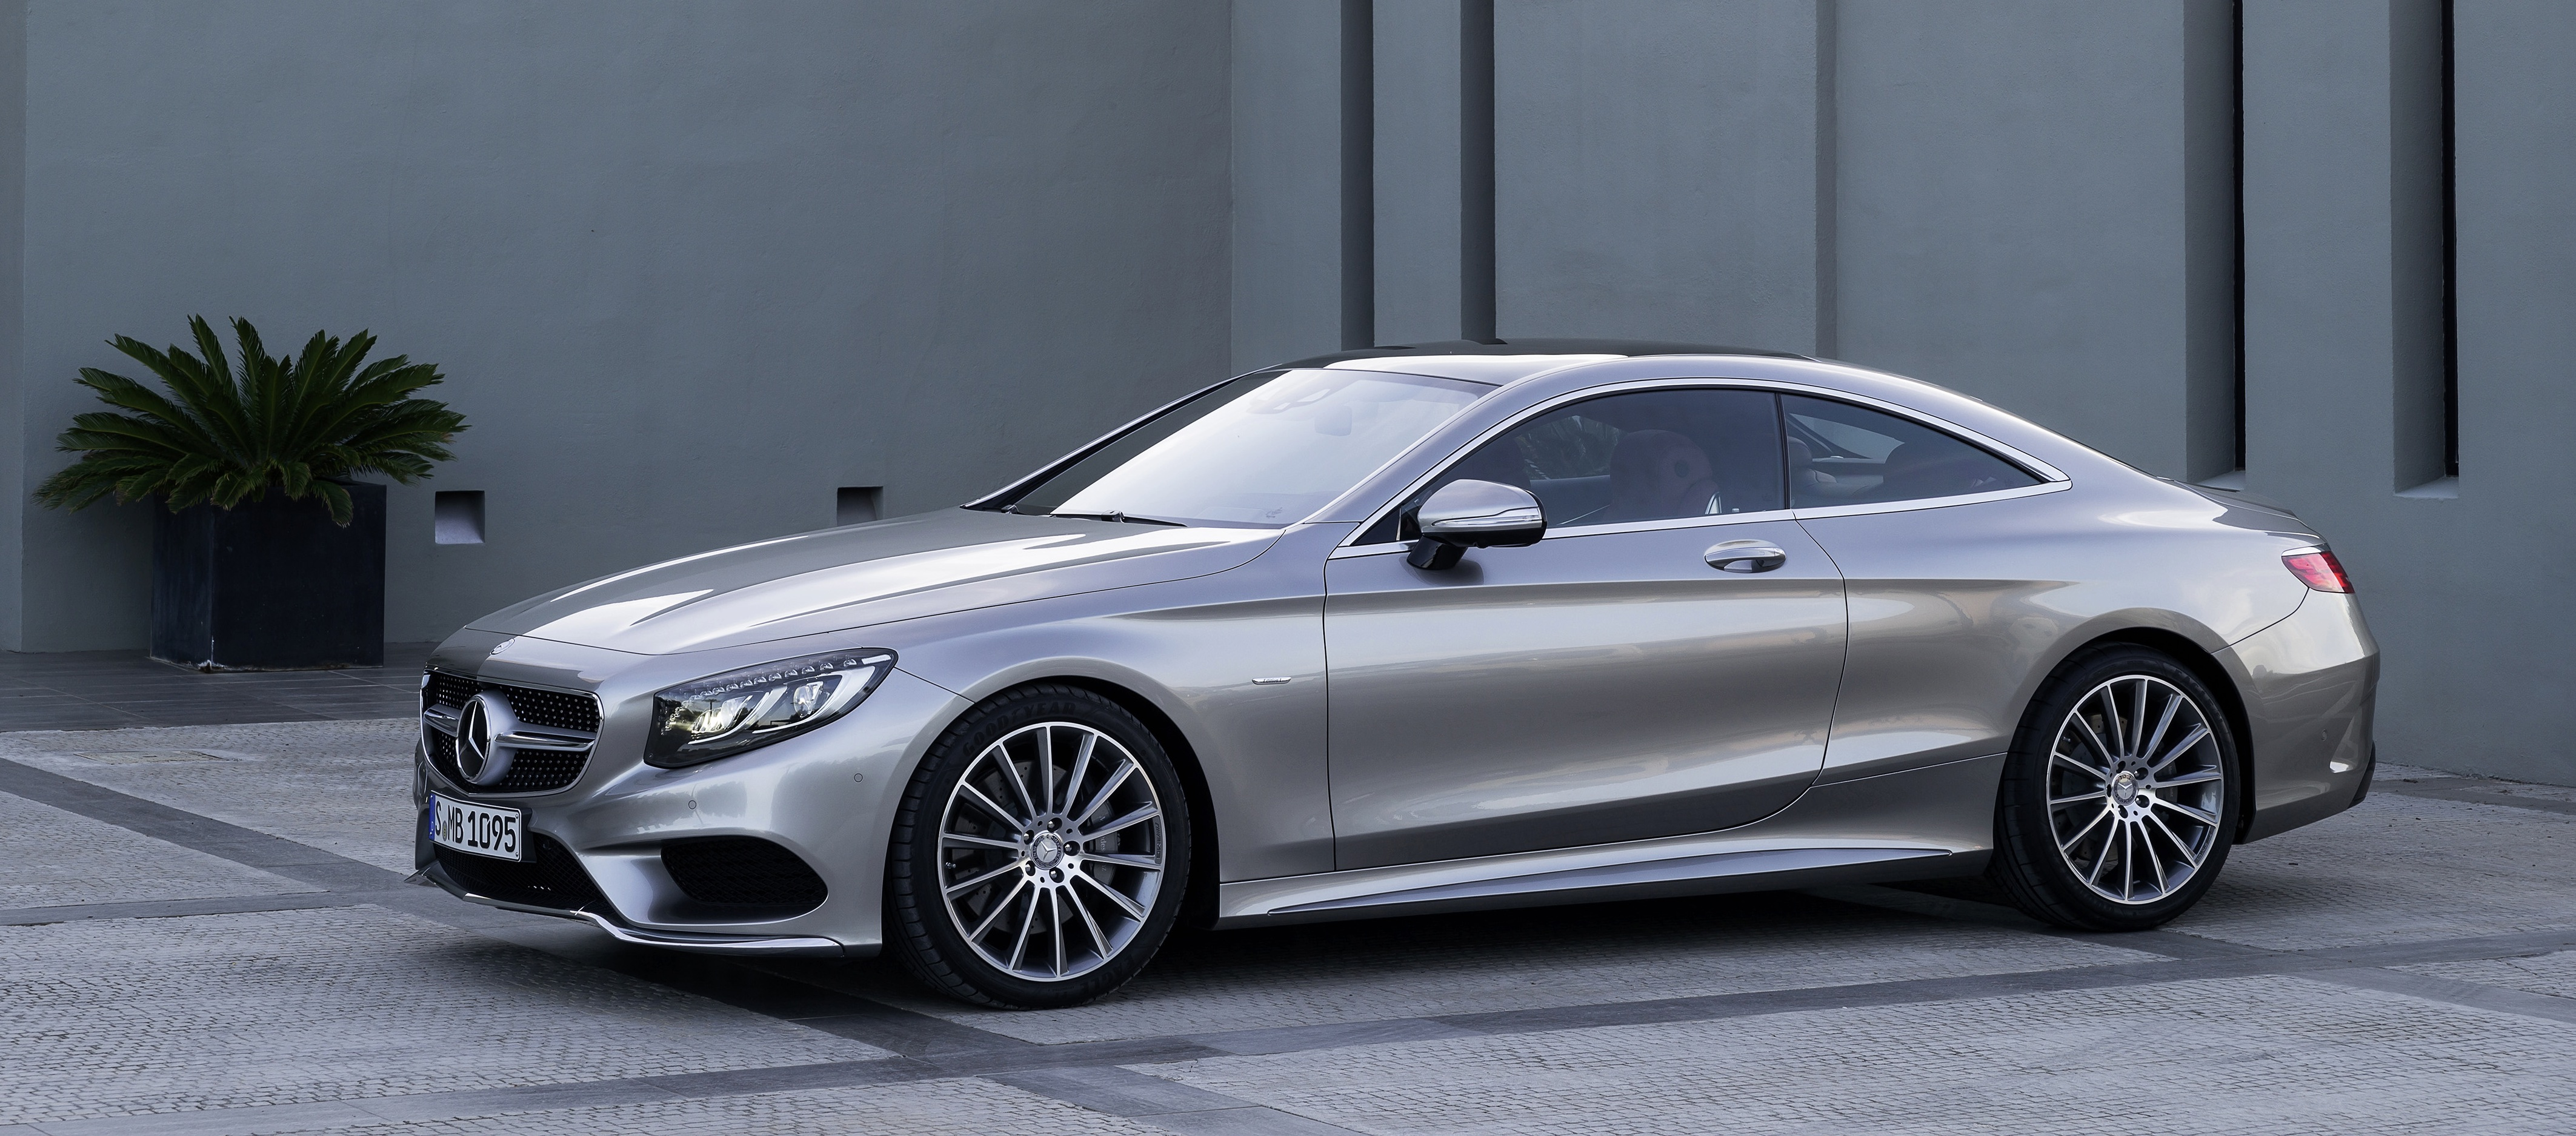 Mercedes C Class Coupe >> Mercedes-Benz S-Class Coupe – crystal clear details Paul Tan - Image 227806